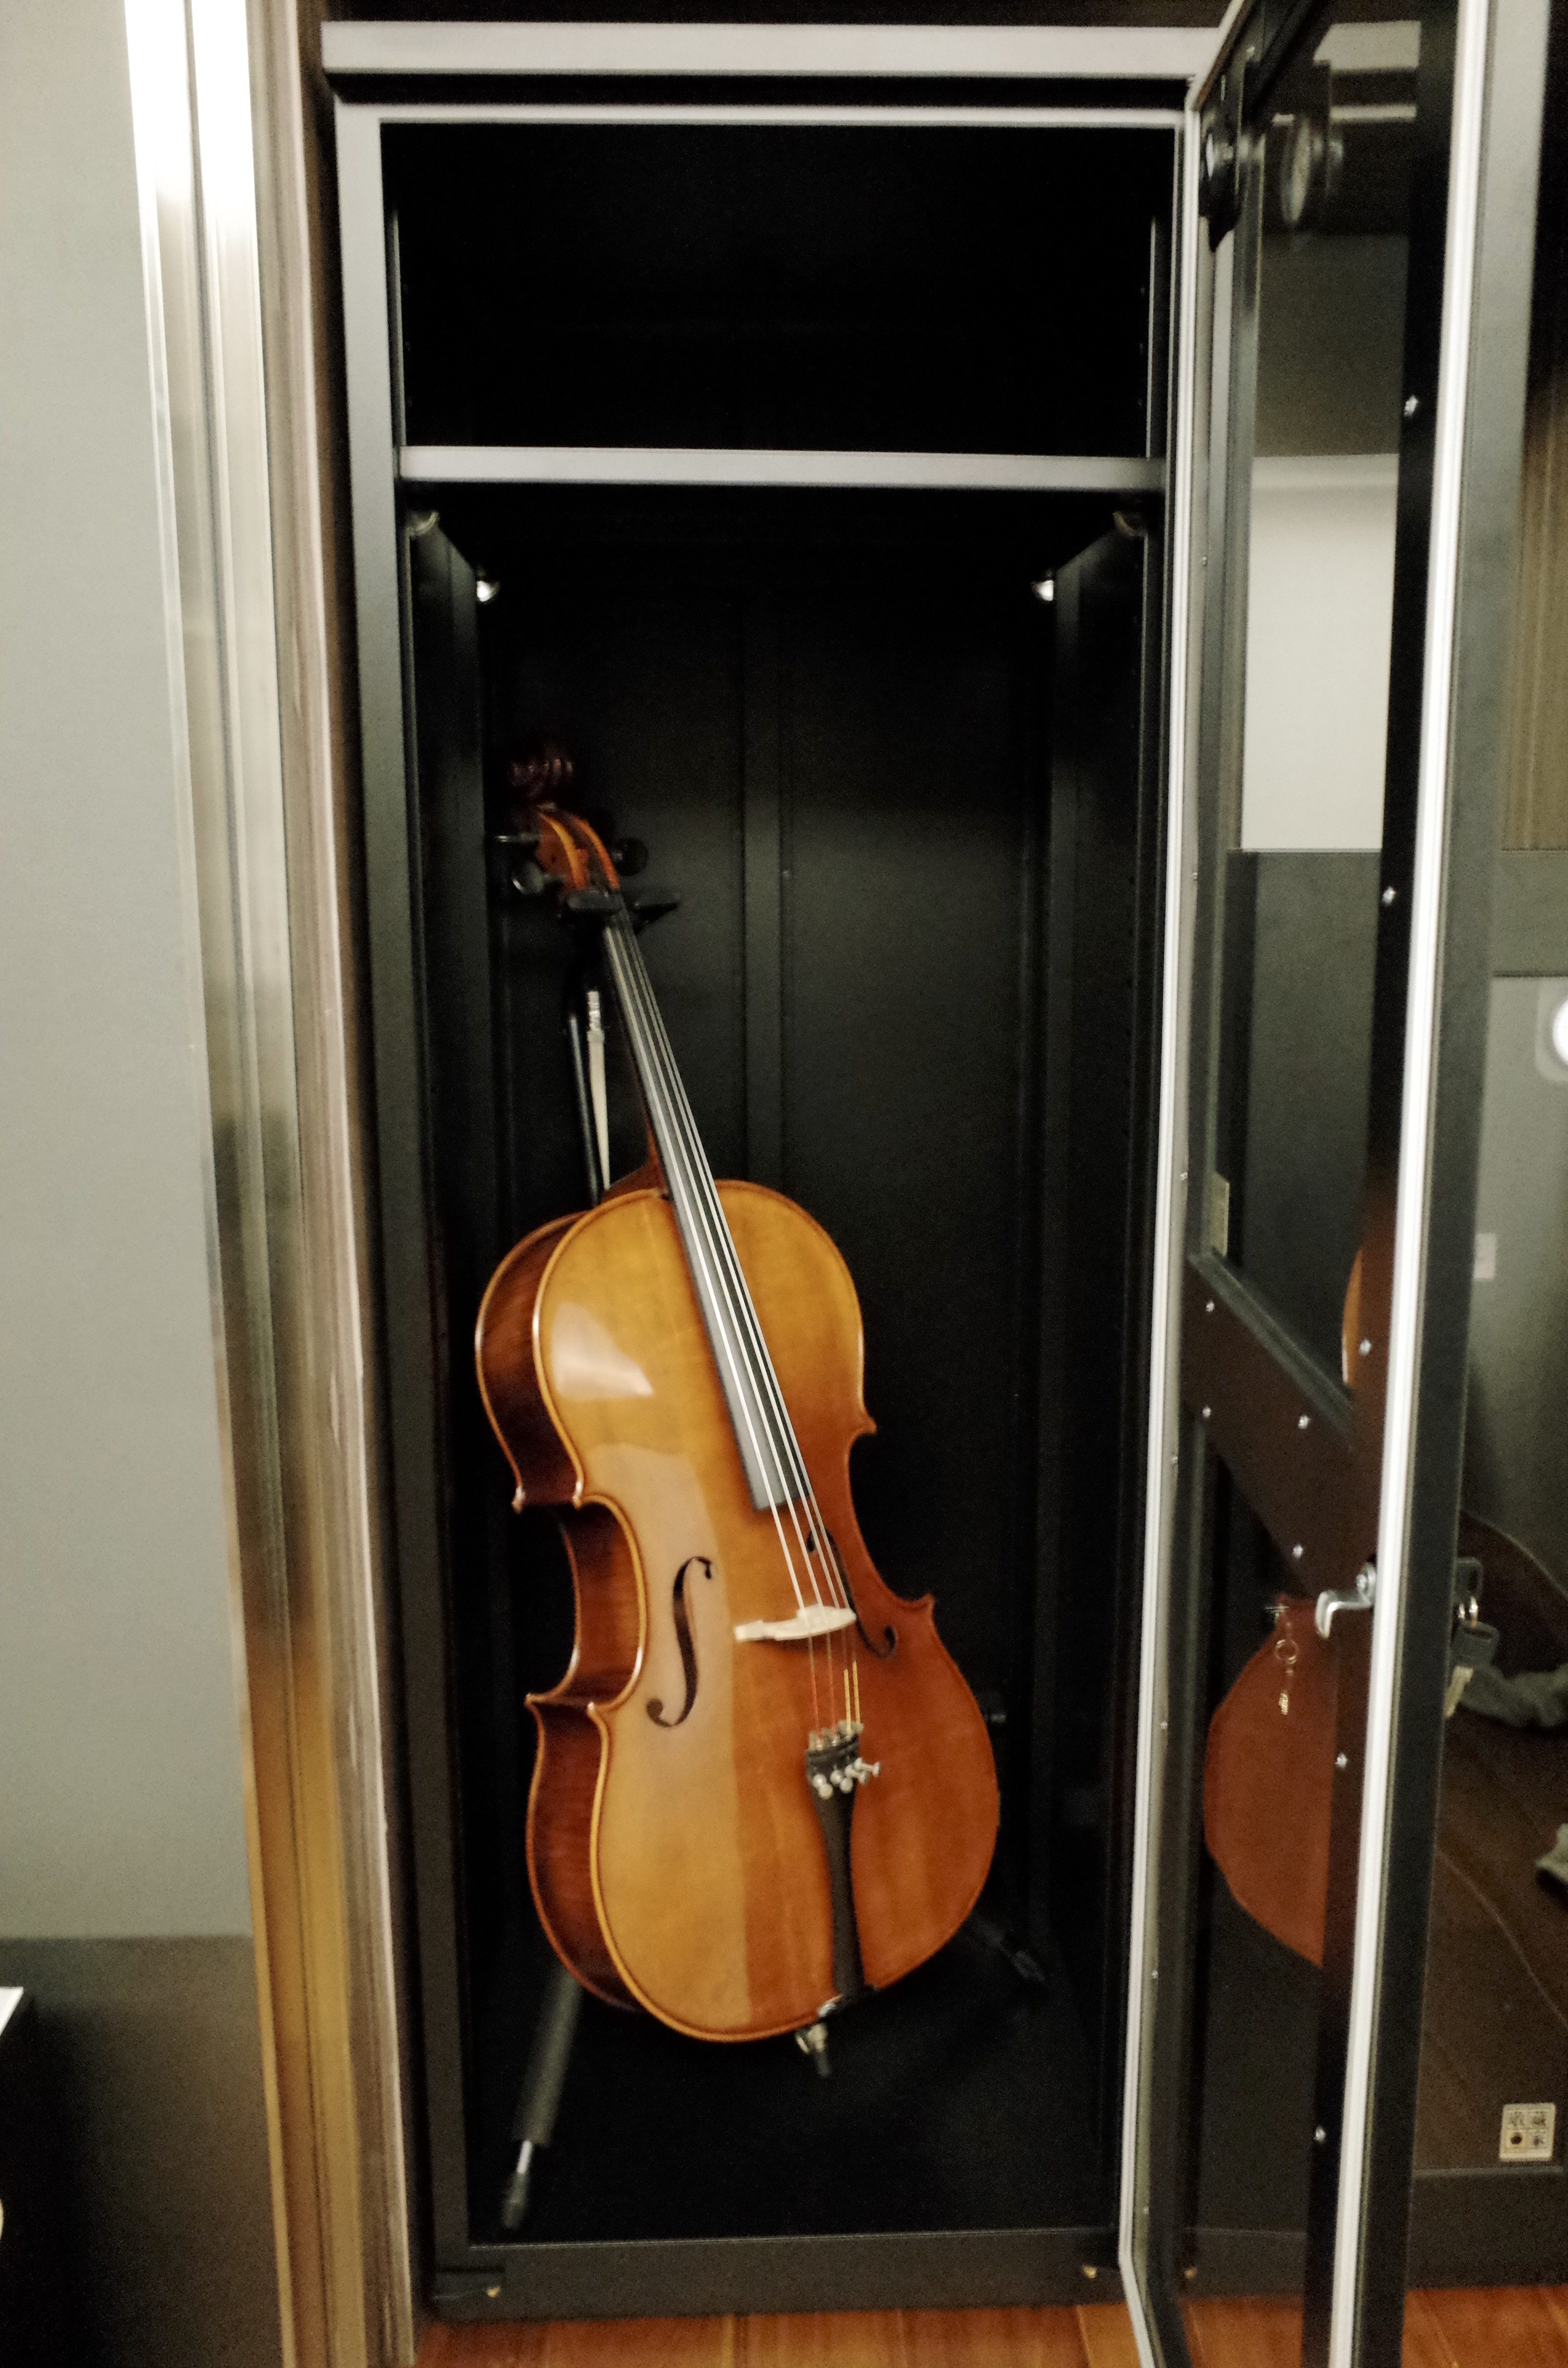 Cello Stored and Displayed in Eureka Dry Tech Dry Cabinet